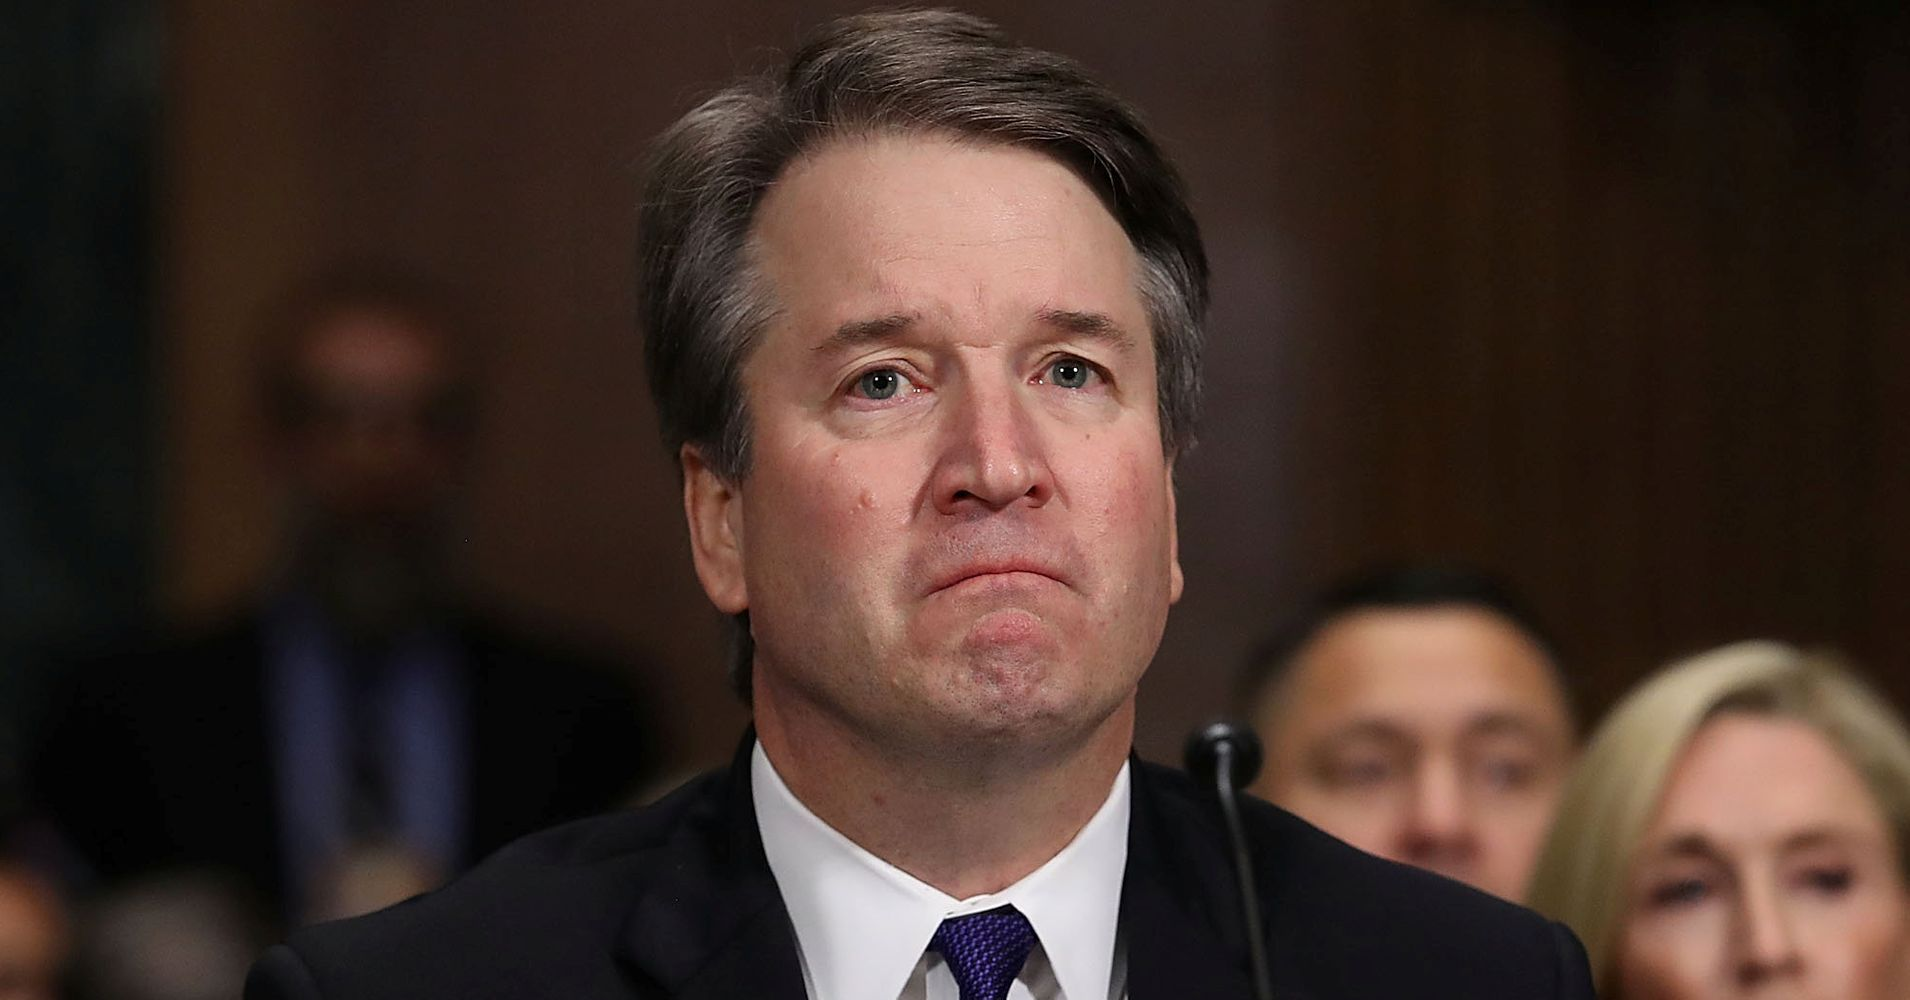 American Bar Association: Delay Kavanaugh Confirmation Vote Until FBI Investigates